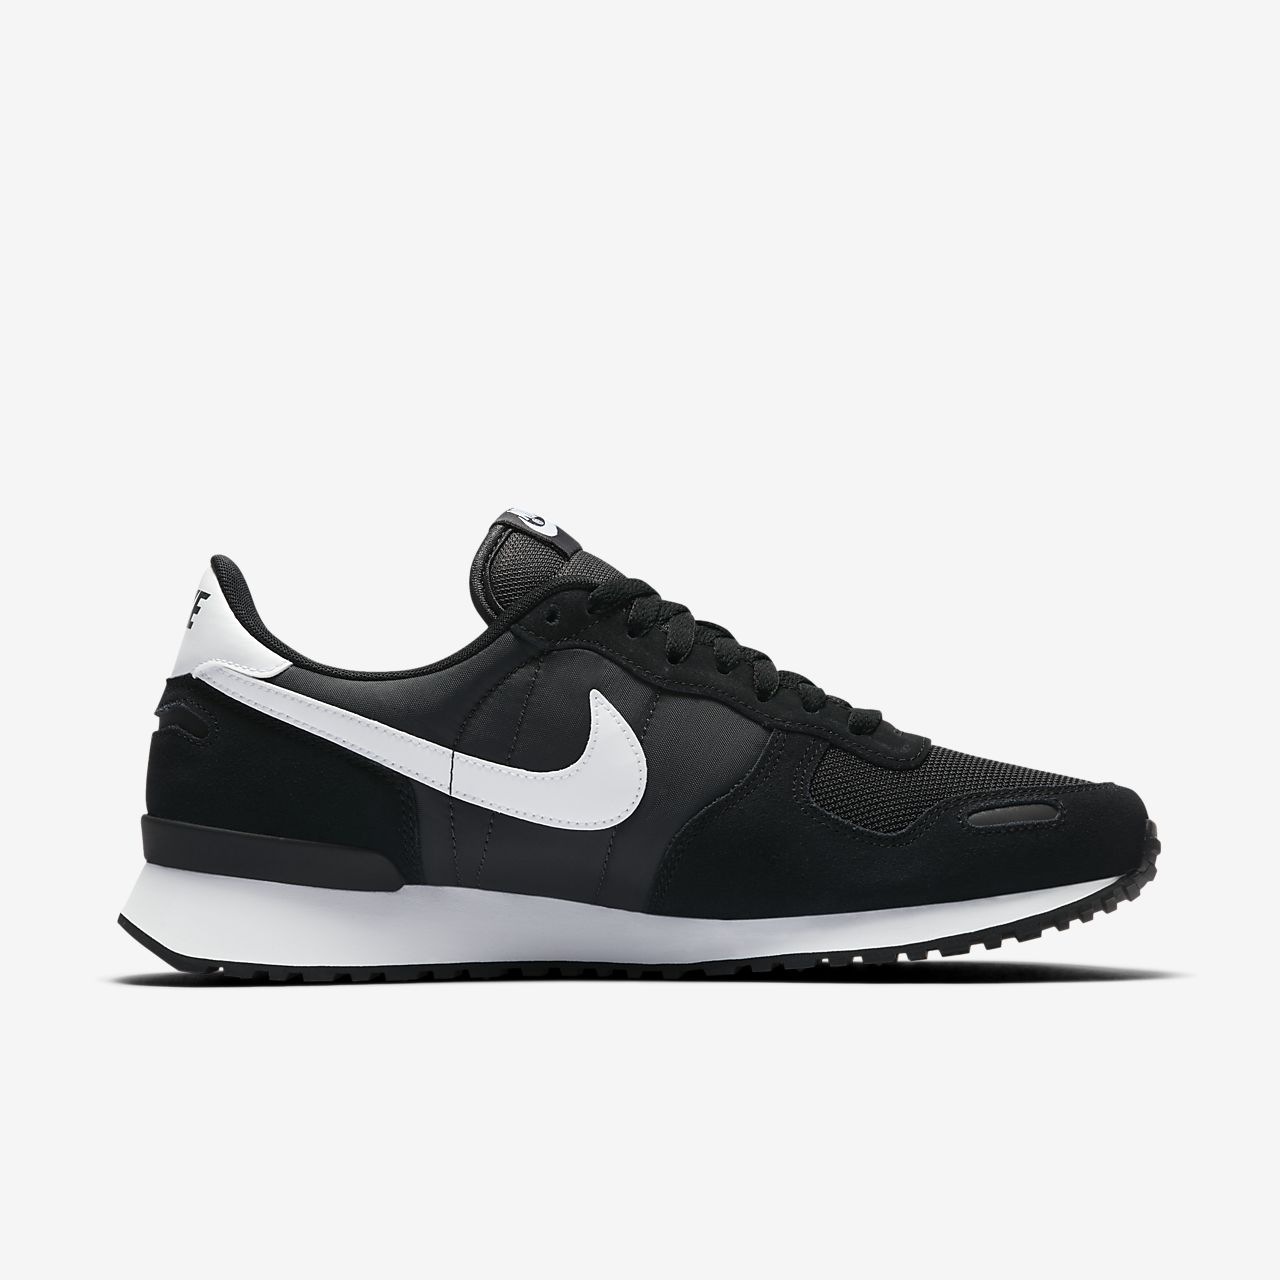 72a5cebdf1ae1a Nike Air Vortex Men s Shoe. Nike.com AU